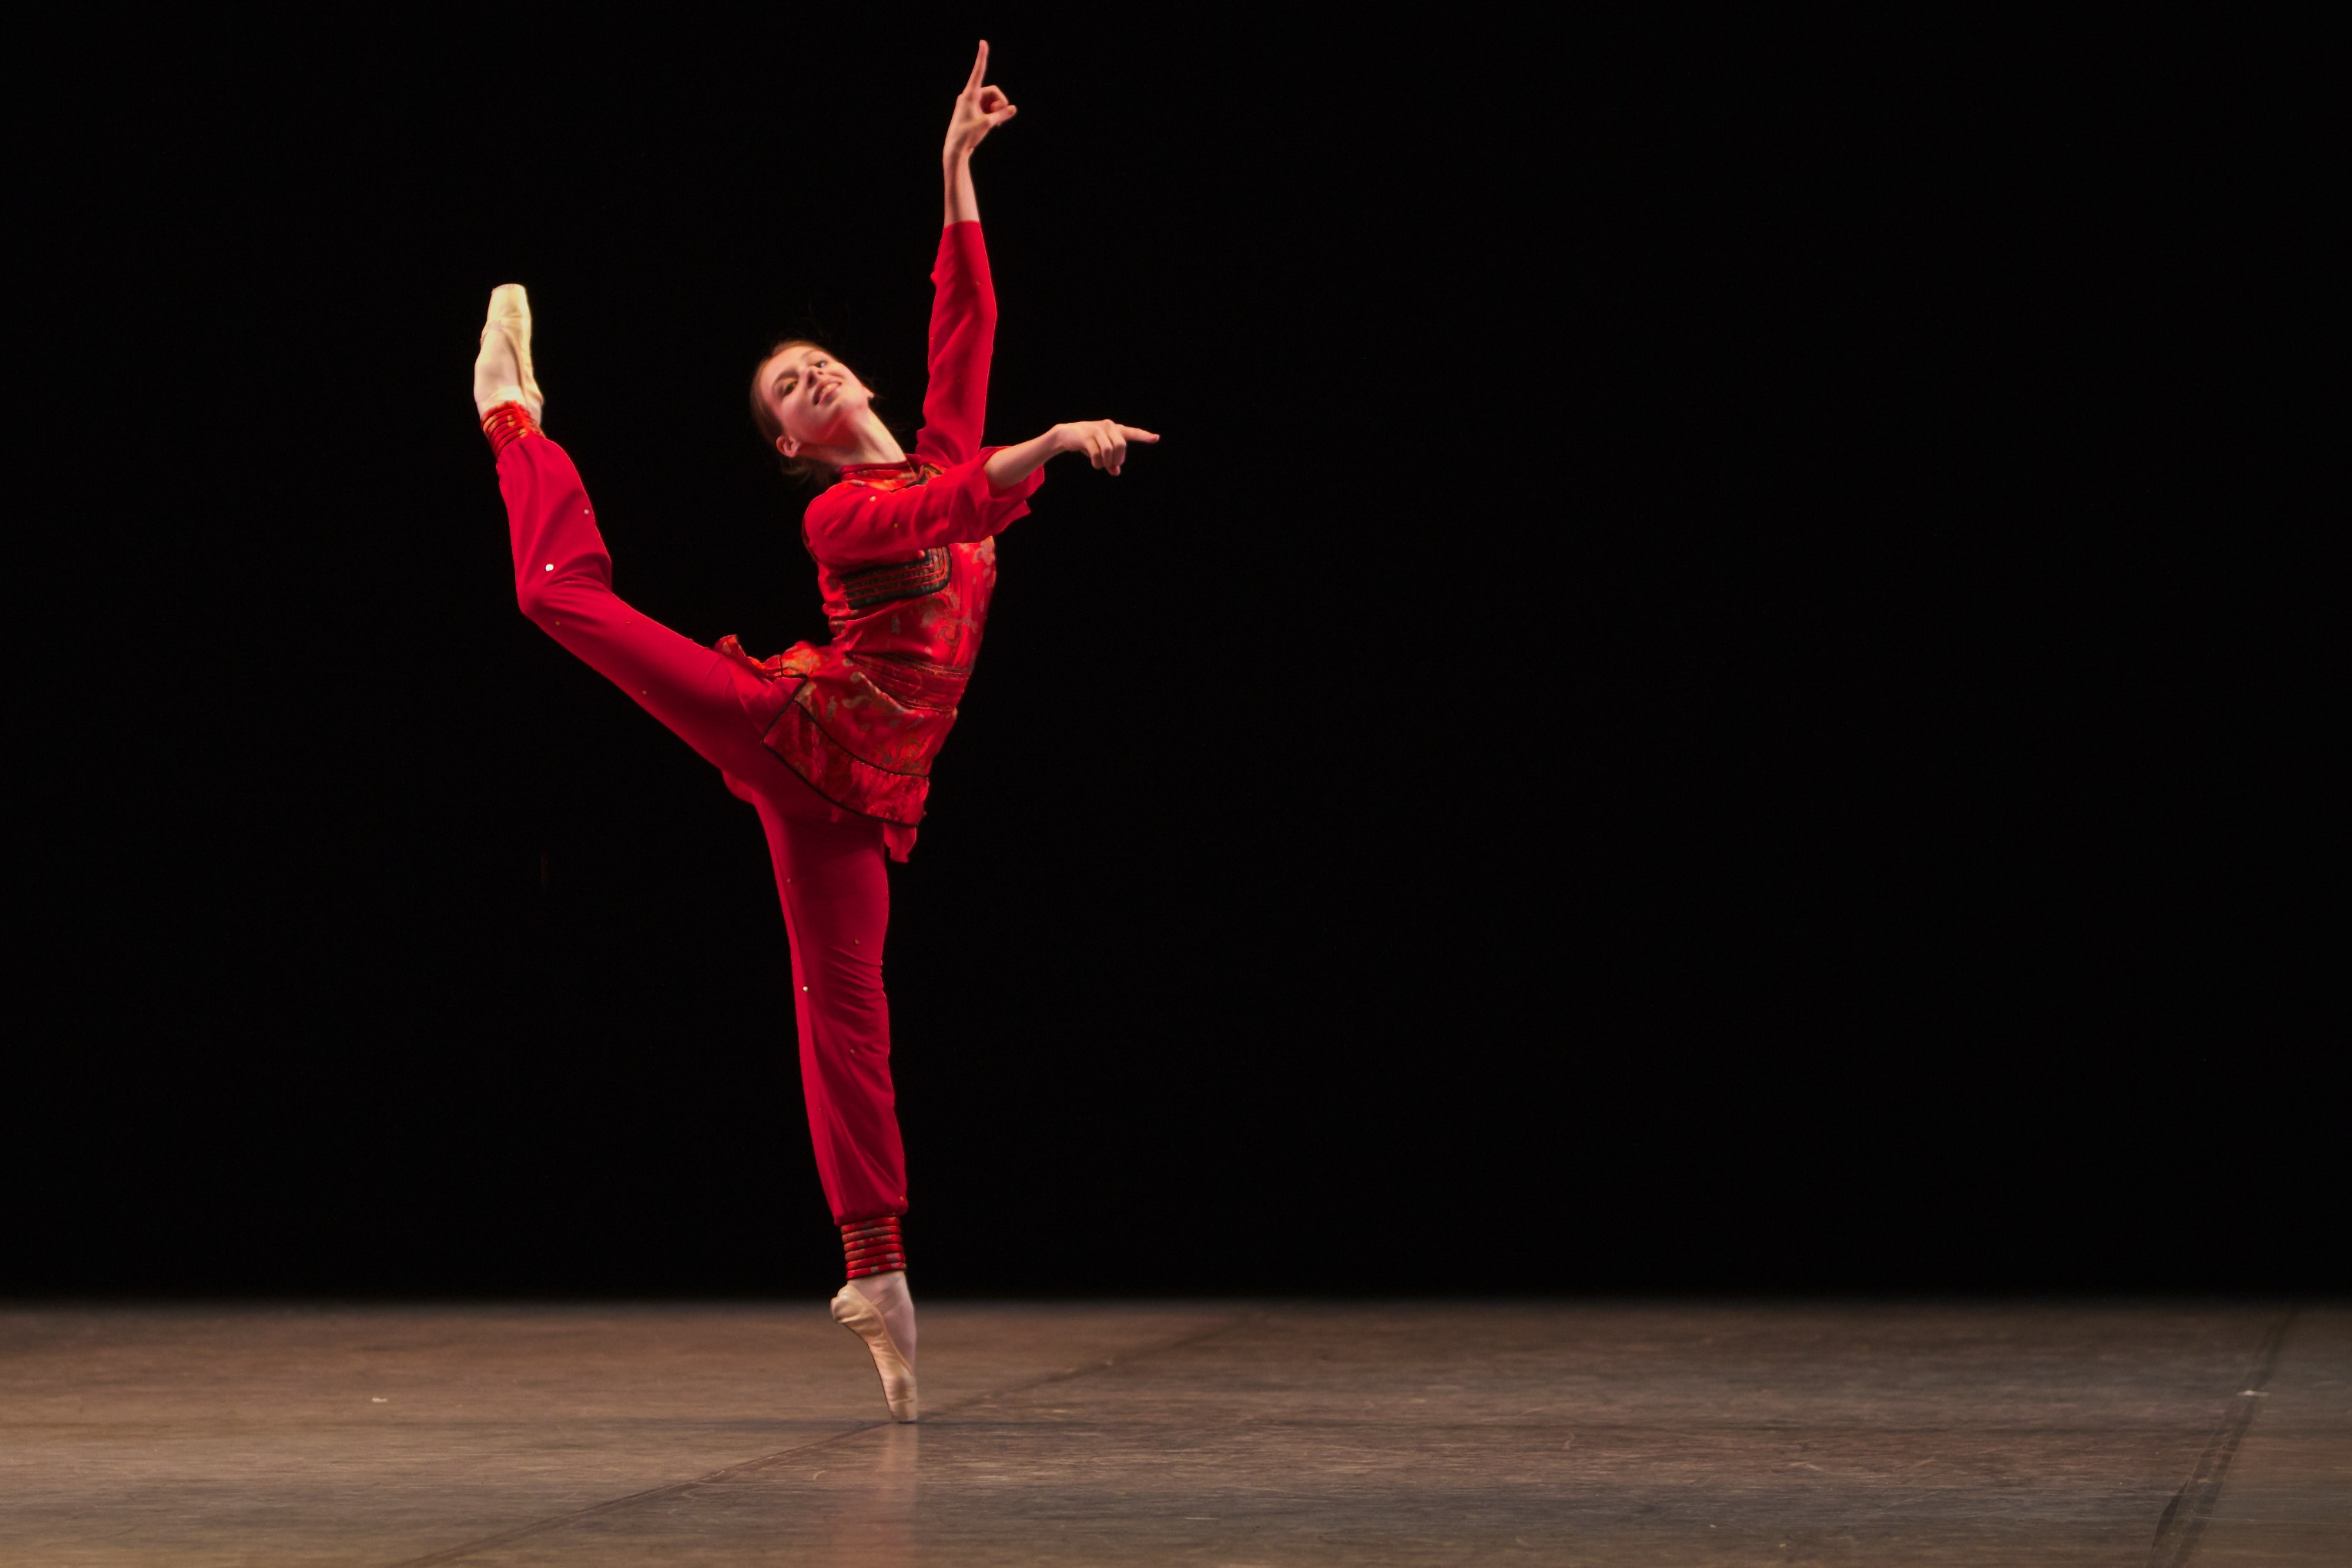 dancer stand on pointe shoes in red costume